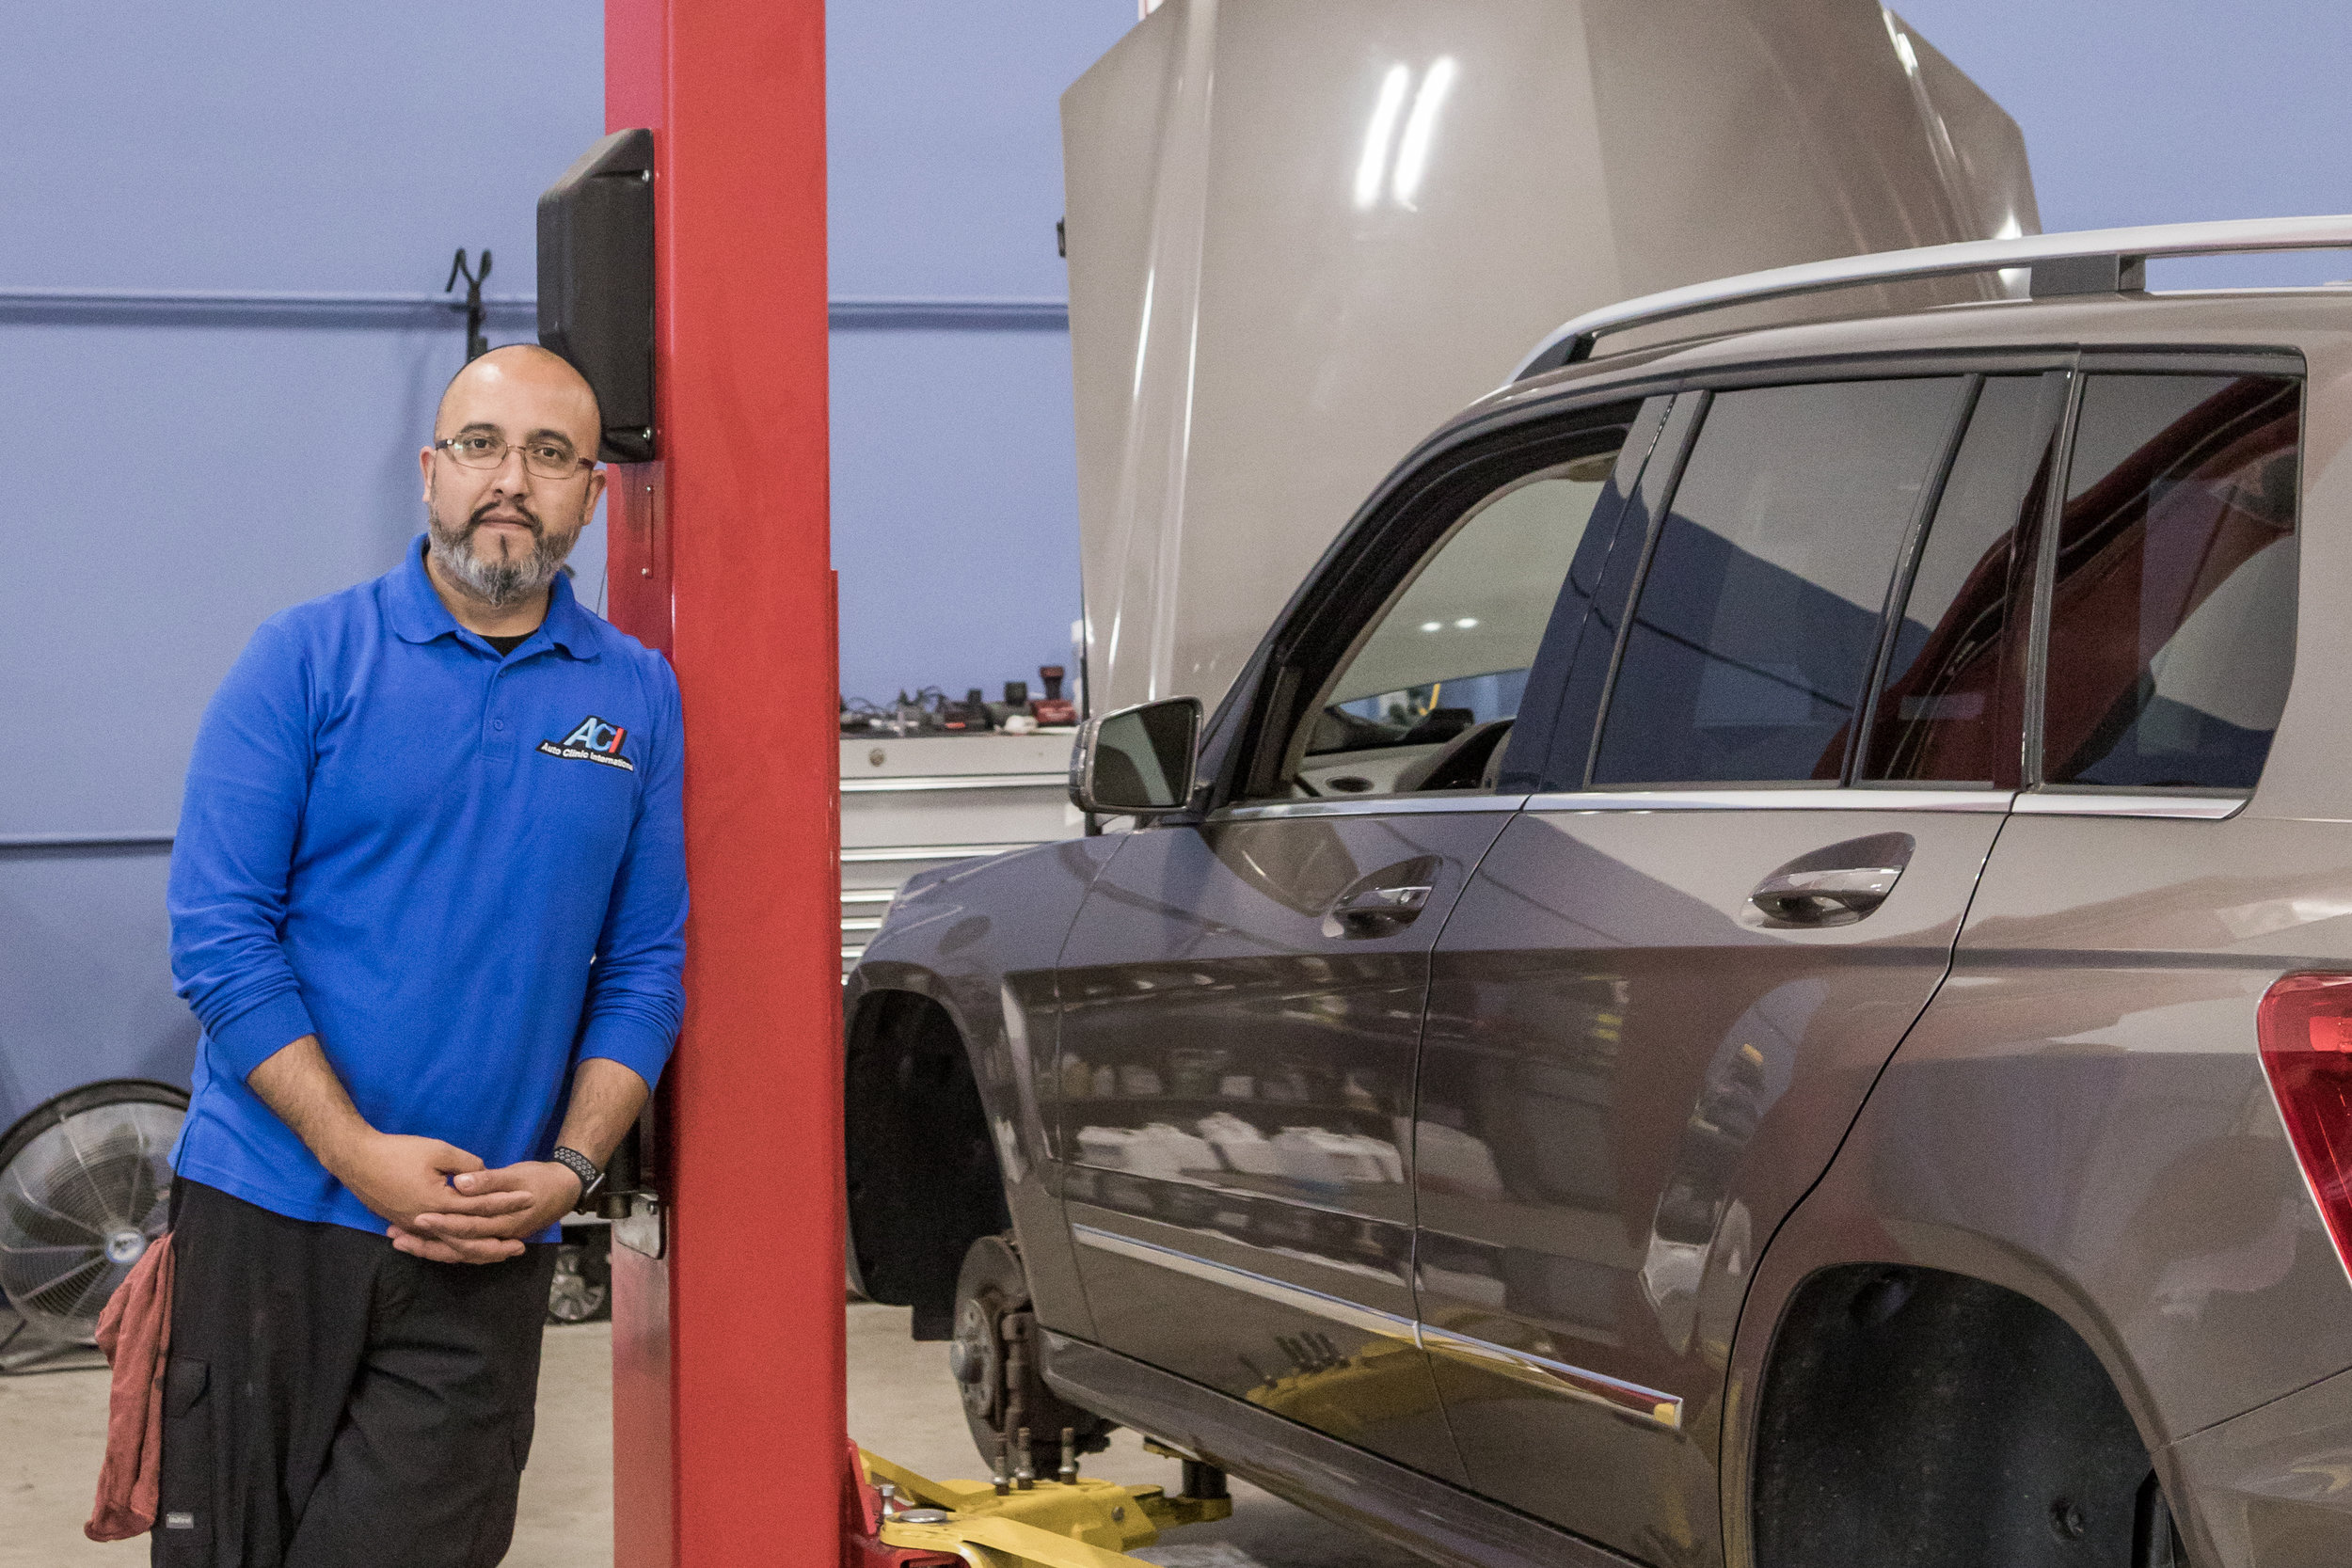 Edgar first discovered his passion as soon as he started working as an auto mechanic.